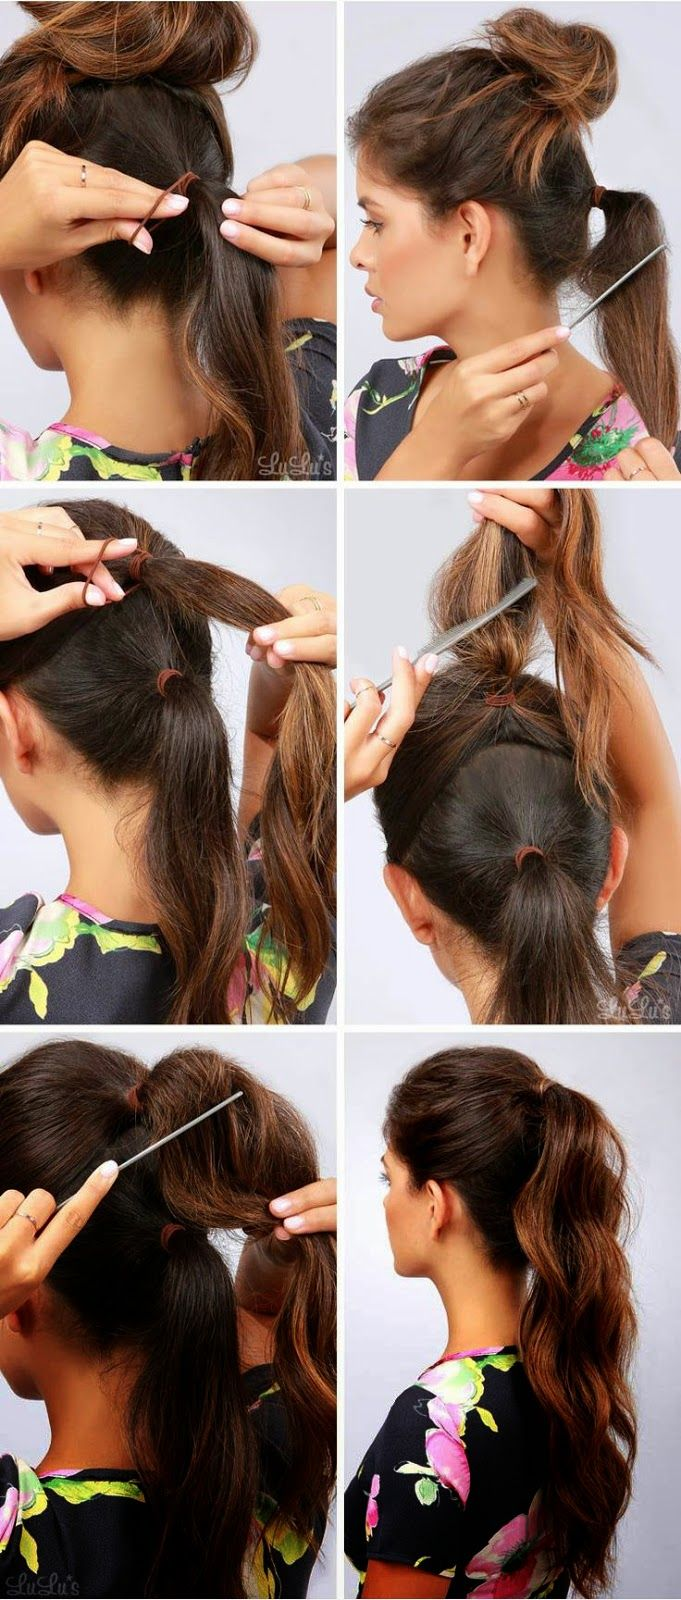 57 best sportswear hair images on pinterest | hairstyles, make up